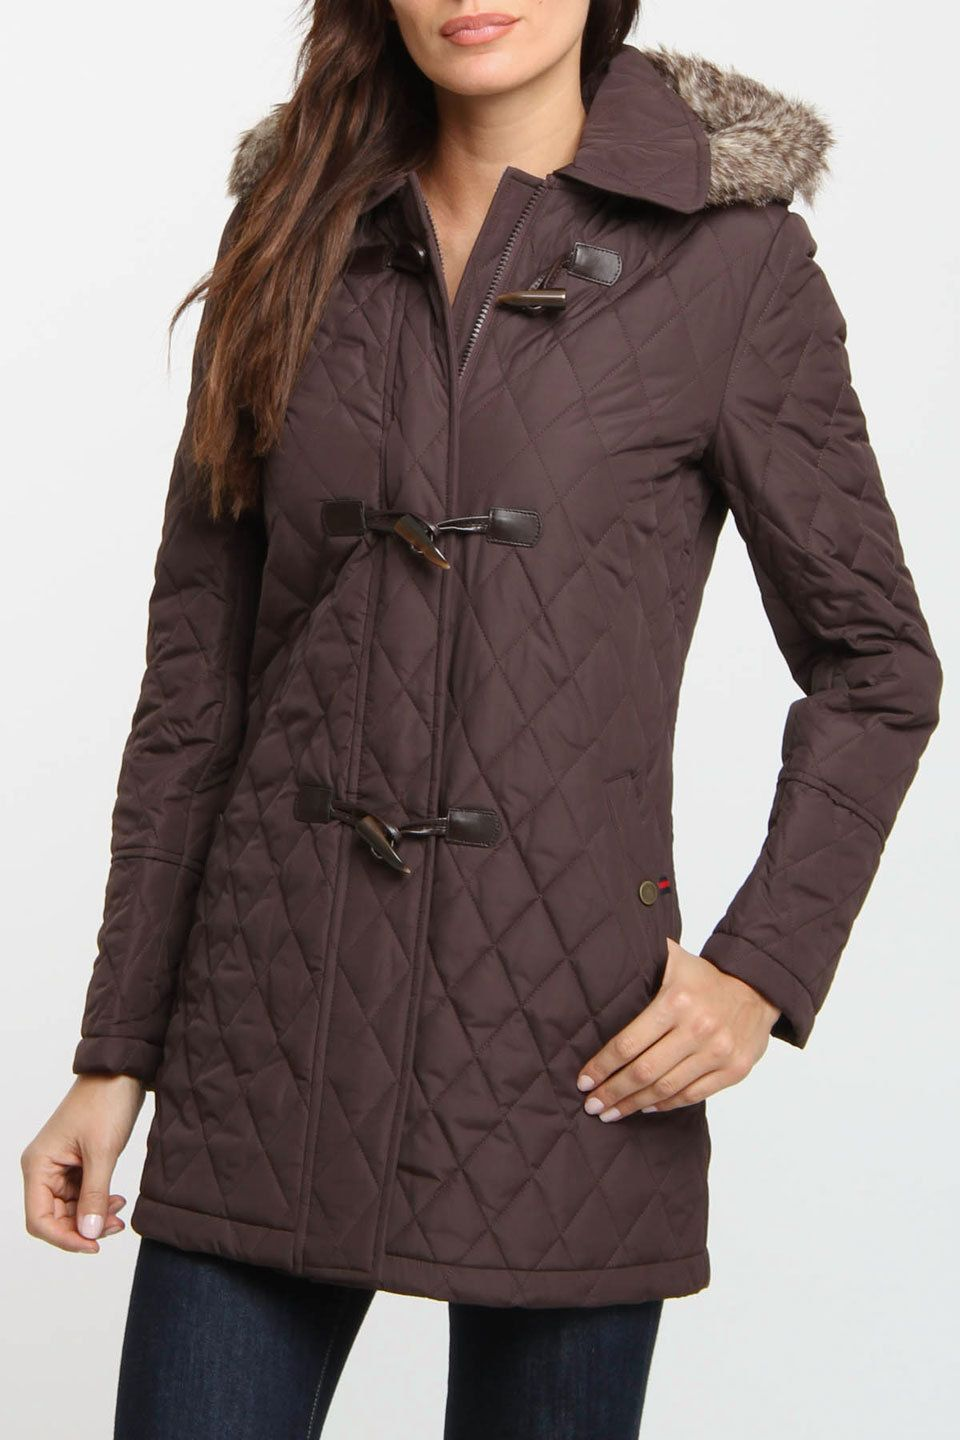 Tommy Hilfiger Glenn Quilted Coat In Chocolate My style